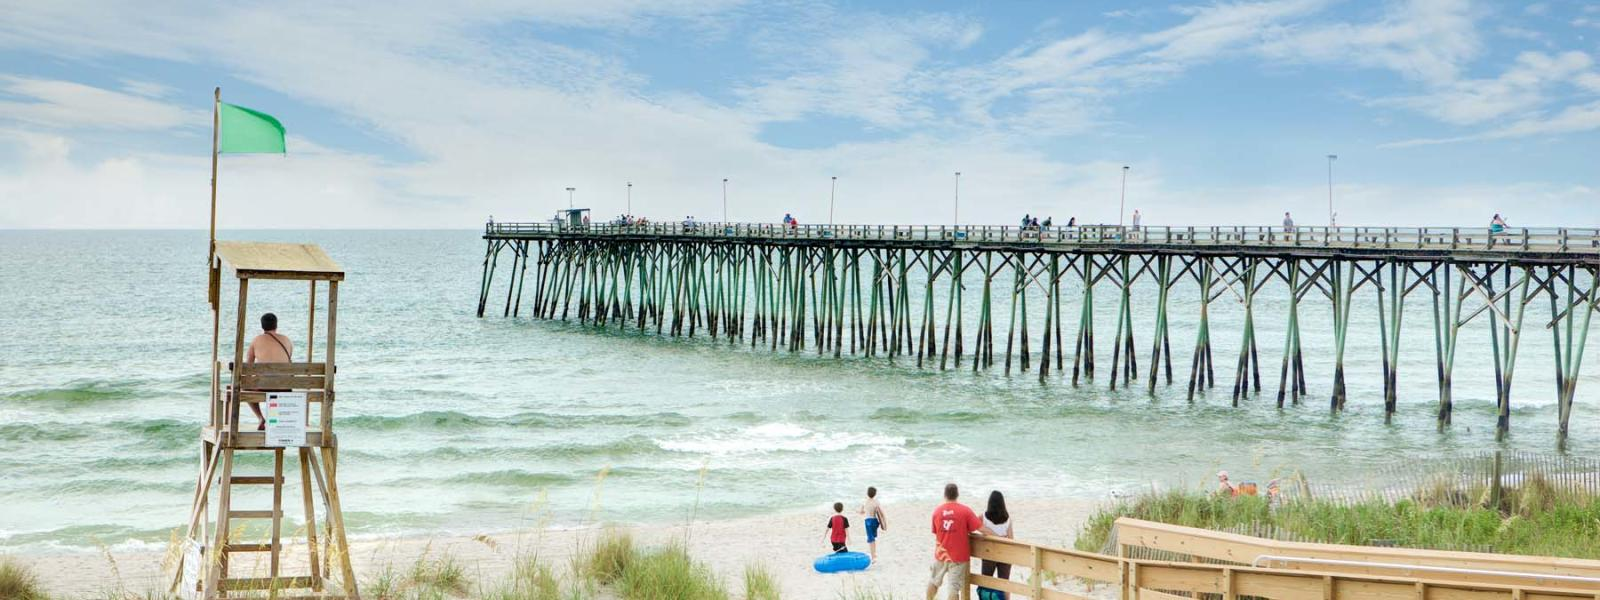 kure beach single men over 50 Kure beach works to maintain a safe and family oriented public space in this park there are several restaurants within a single block of the beach, but some are open only seasonally ask eddiecarol about ocean front park.